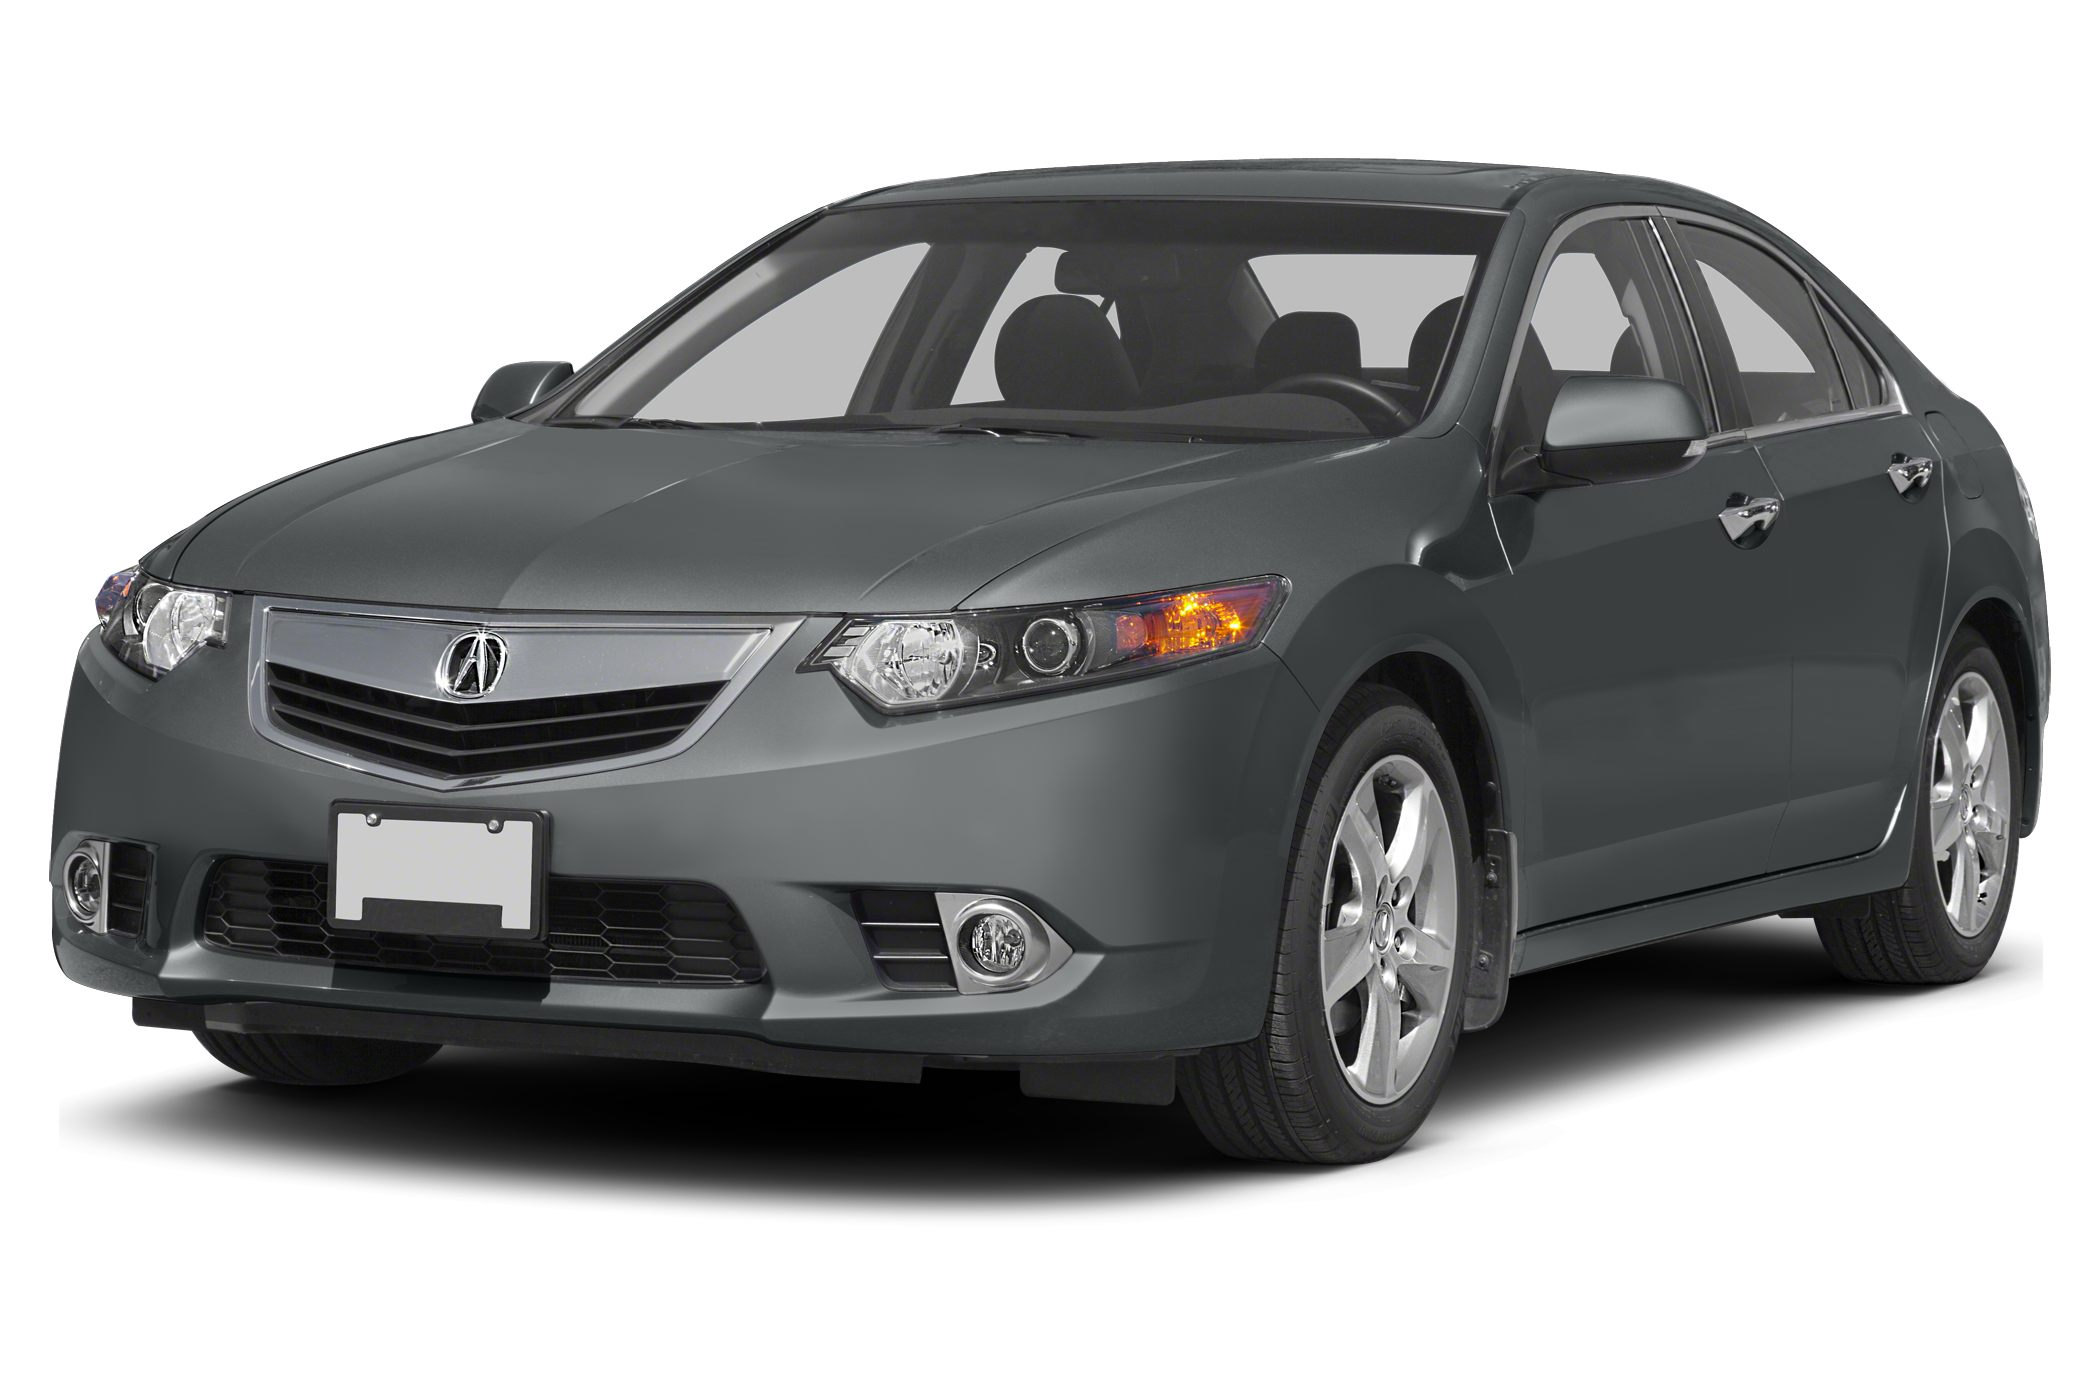 2013 Acura TSX 24  COME SEE THE DIFFERENCE AT TAJ AUTO MALL WE SELL OUR VEHICLES AT WHOL